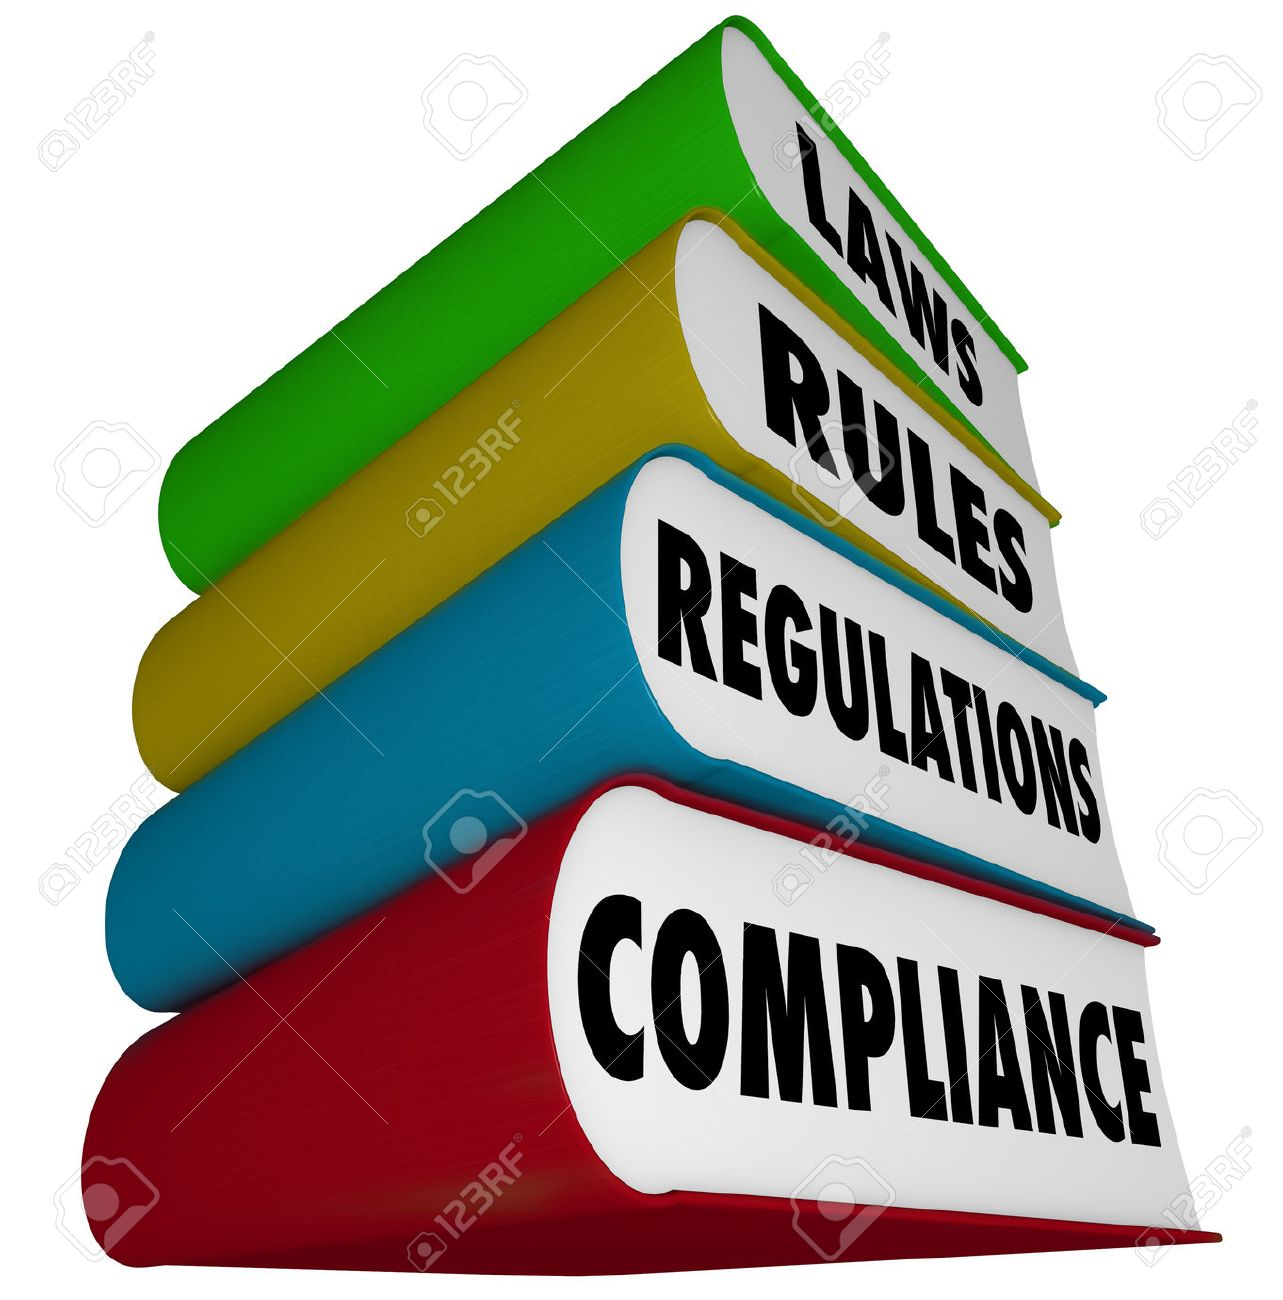 Rules and regulations clipart image transparent download Rules clipart corporate compliance - 61 transparent clip ... image transparent download